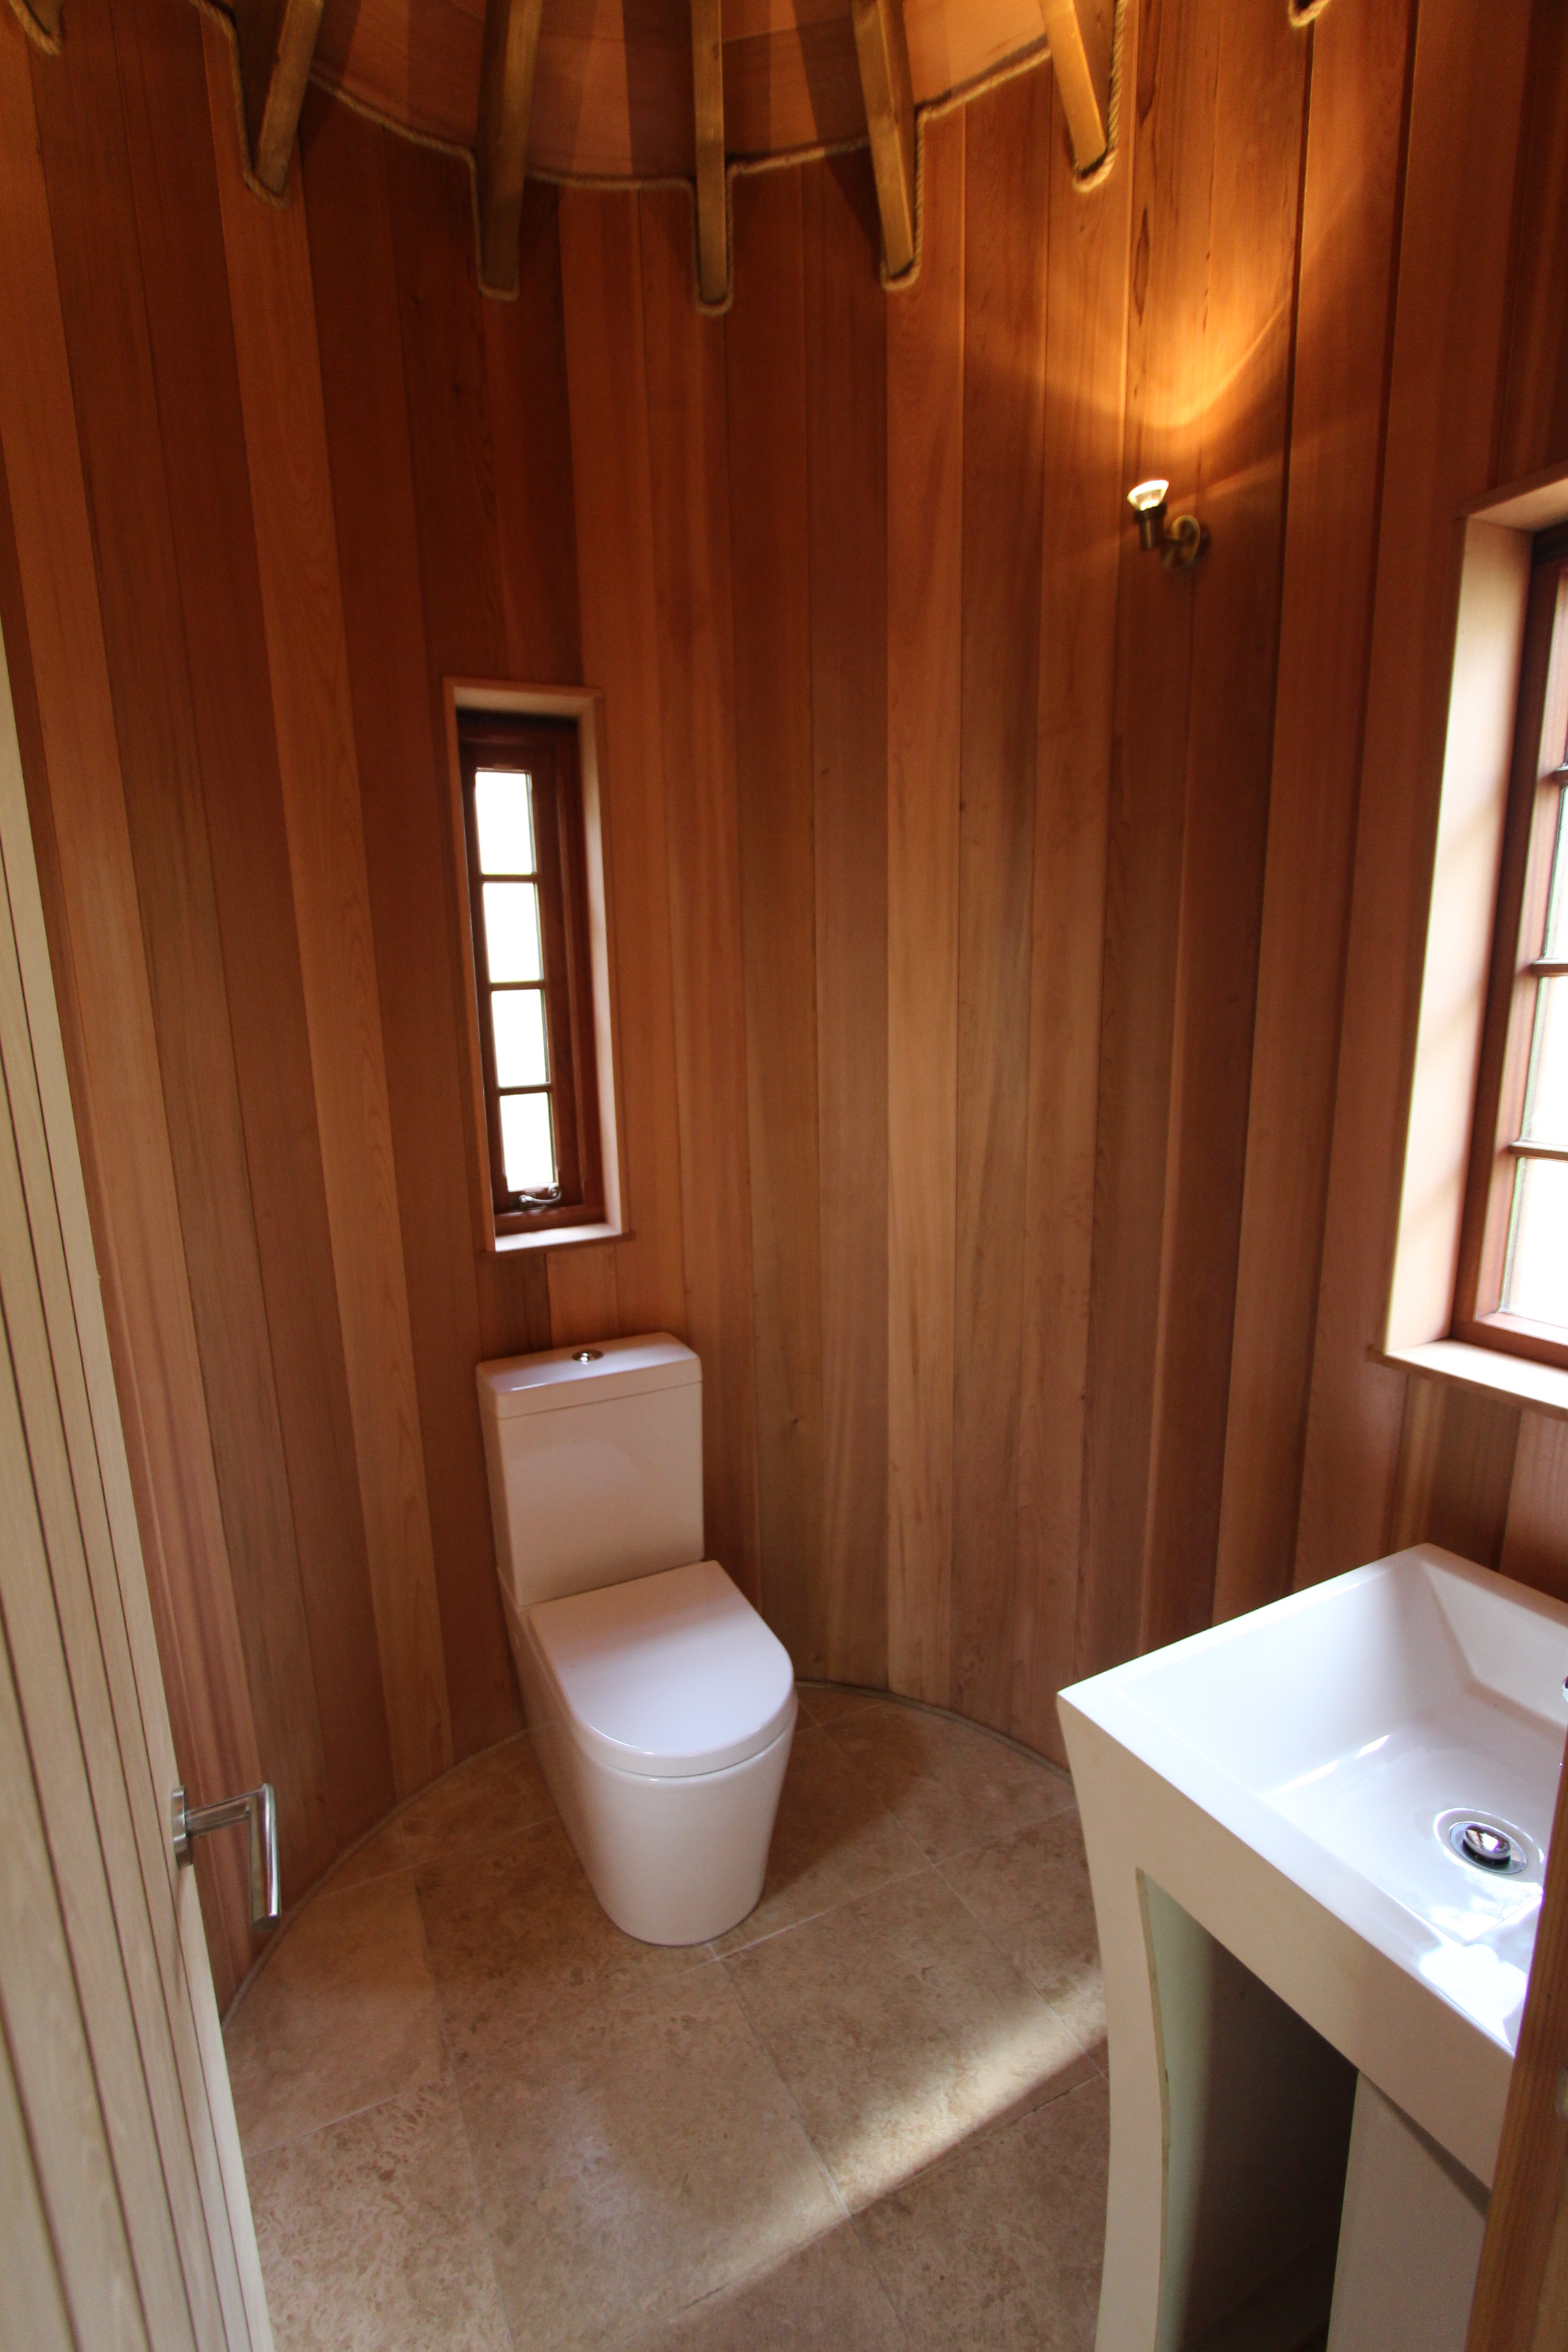 The small bathroom is just off the main sitting area and home theatre.